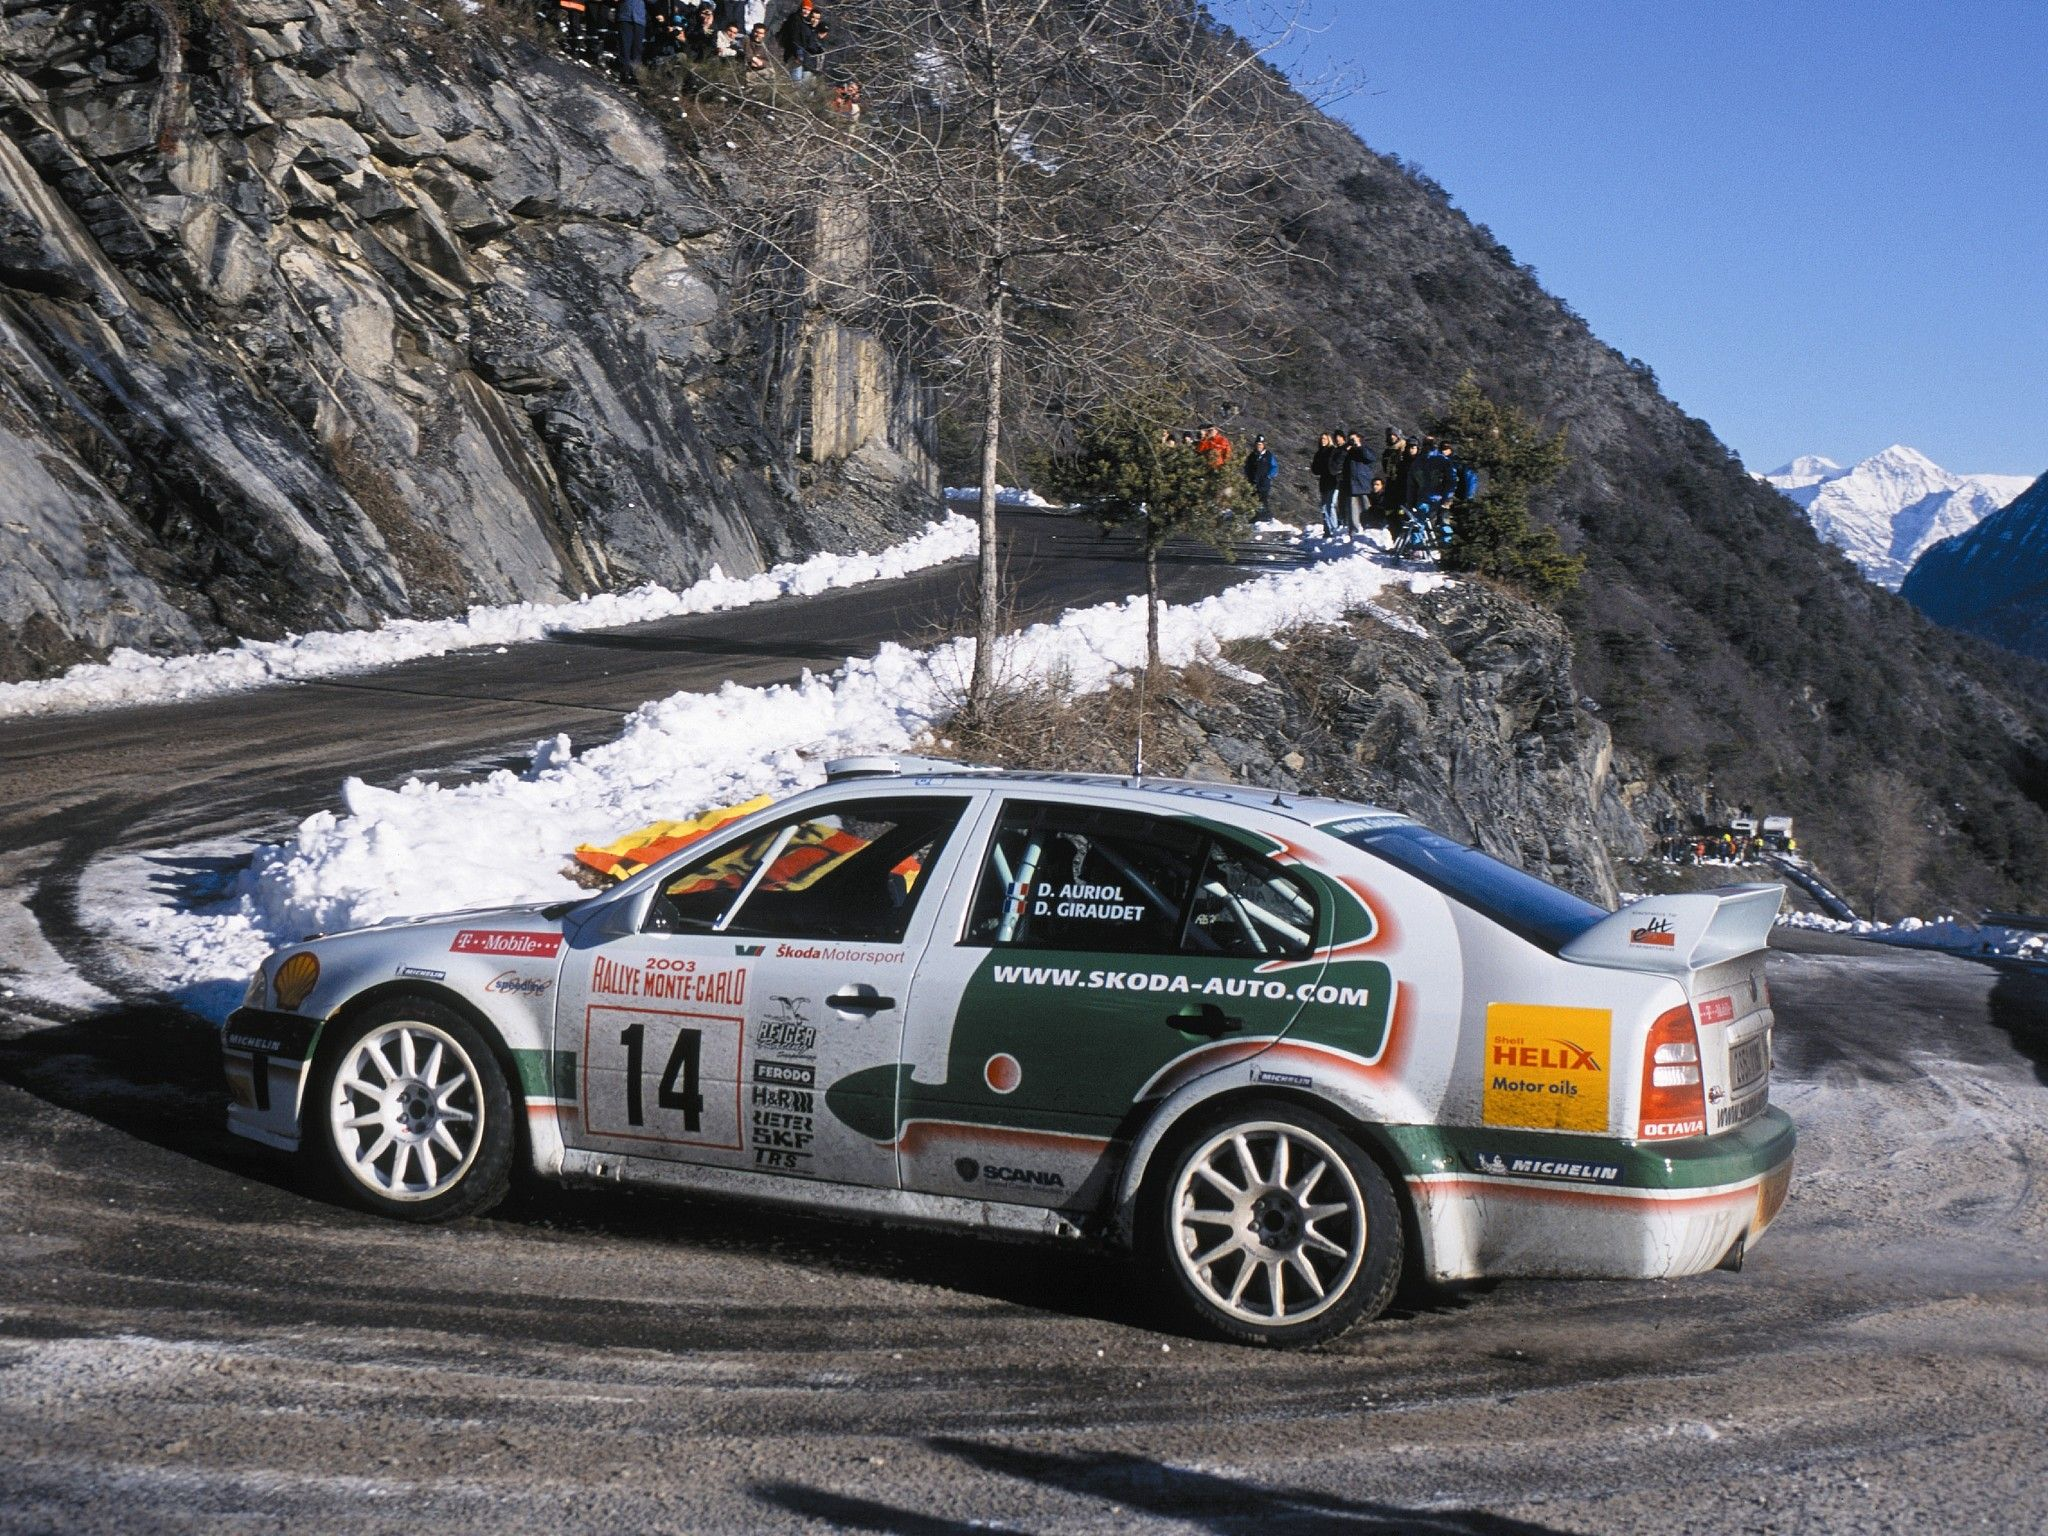 Skoda Octavia WRC | All Racing Cars | ŠKODA MOTORSPORT | Pinterest ...